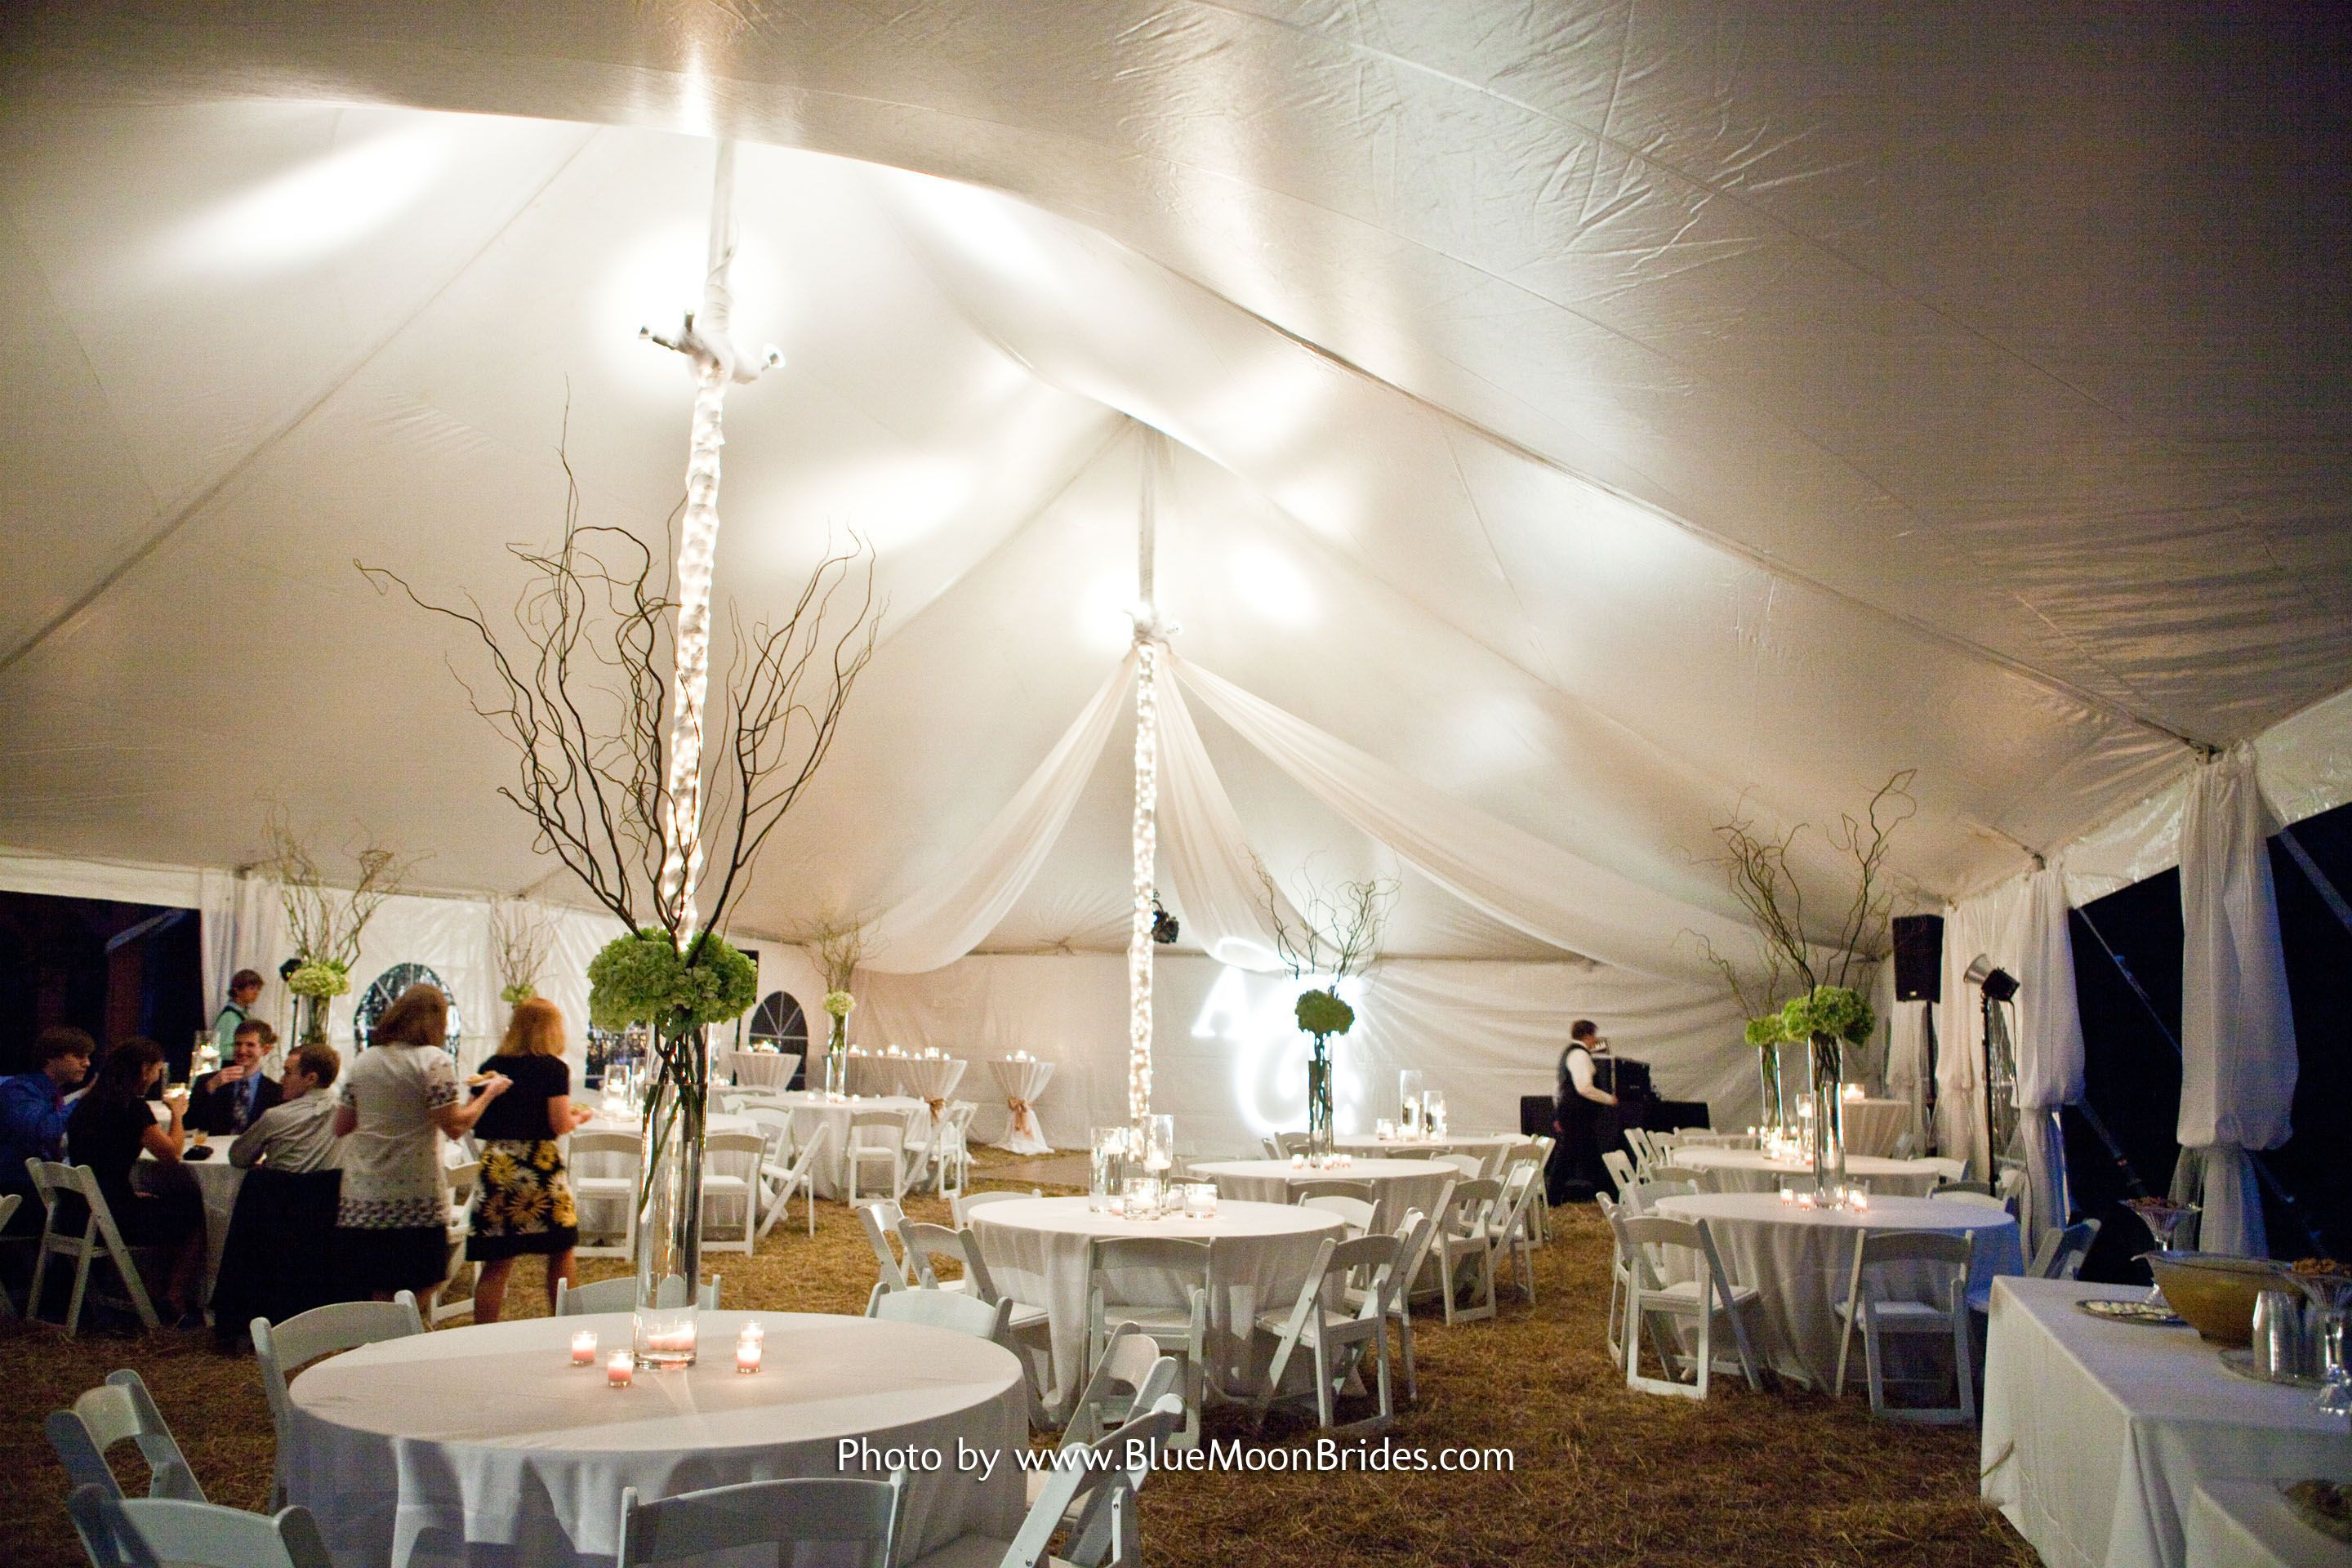 Ideas for wrapping tent poles in lights and tulle & Ideas for wrapping tent poles in lights and tulle | Bridal Stuff ...